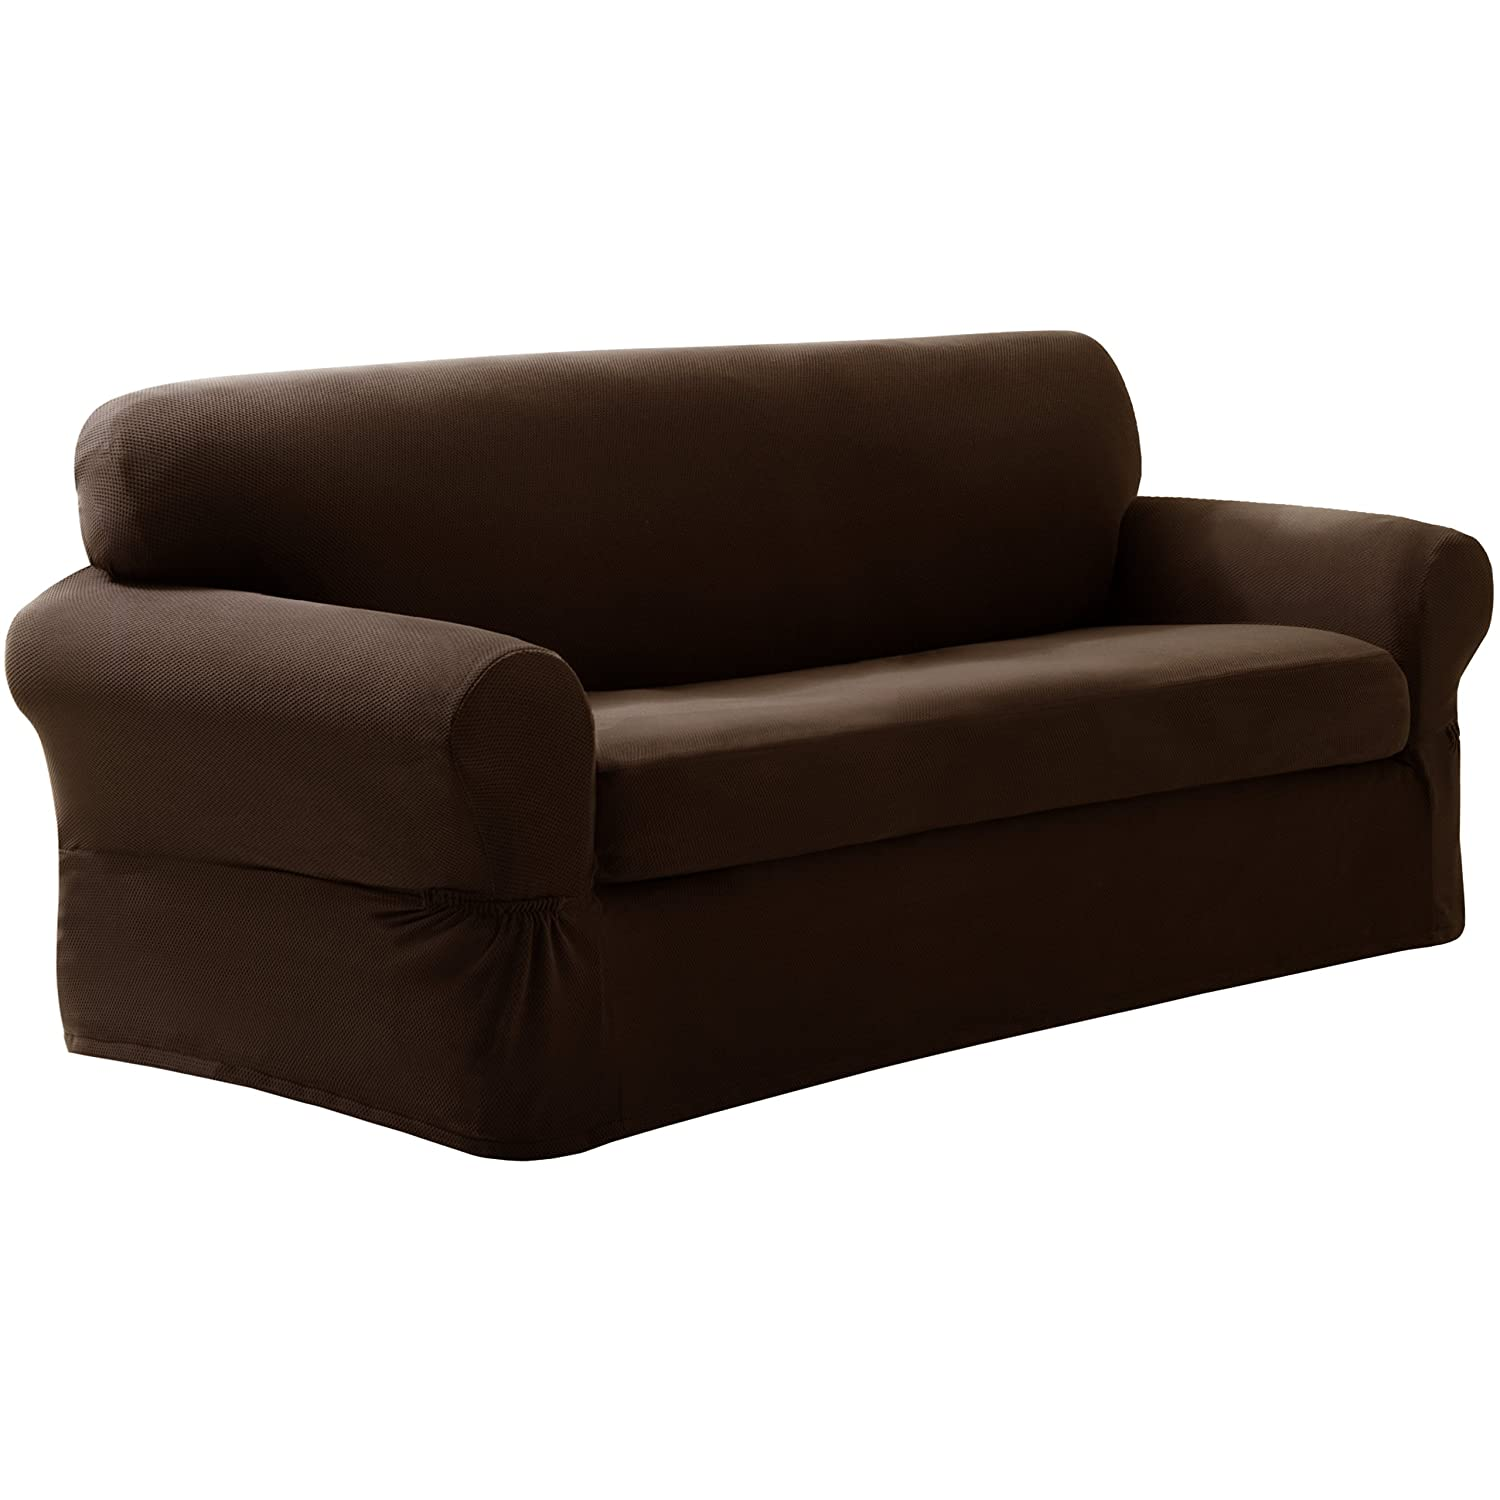 Maytex Pixel Stretch 2 Piece Slipcover Sofa Chocolate New Free Shipping